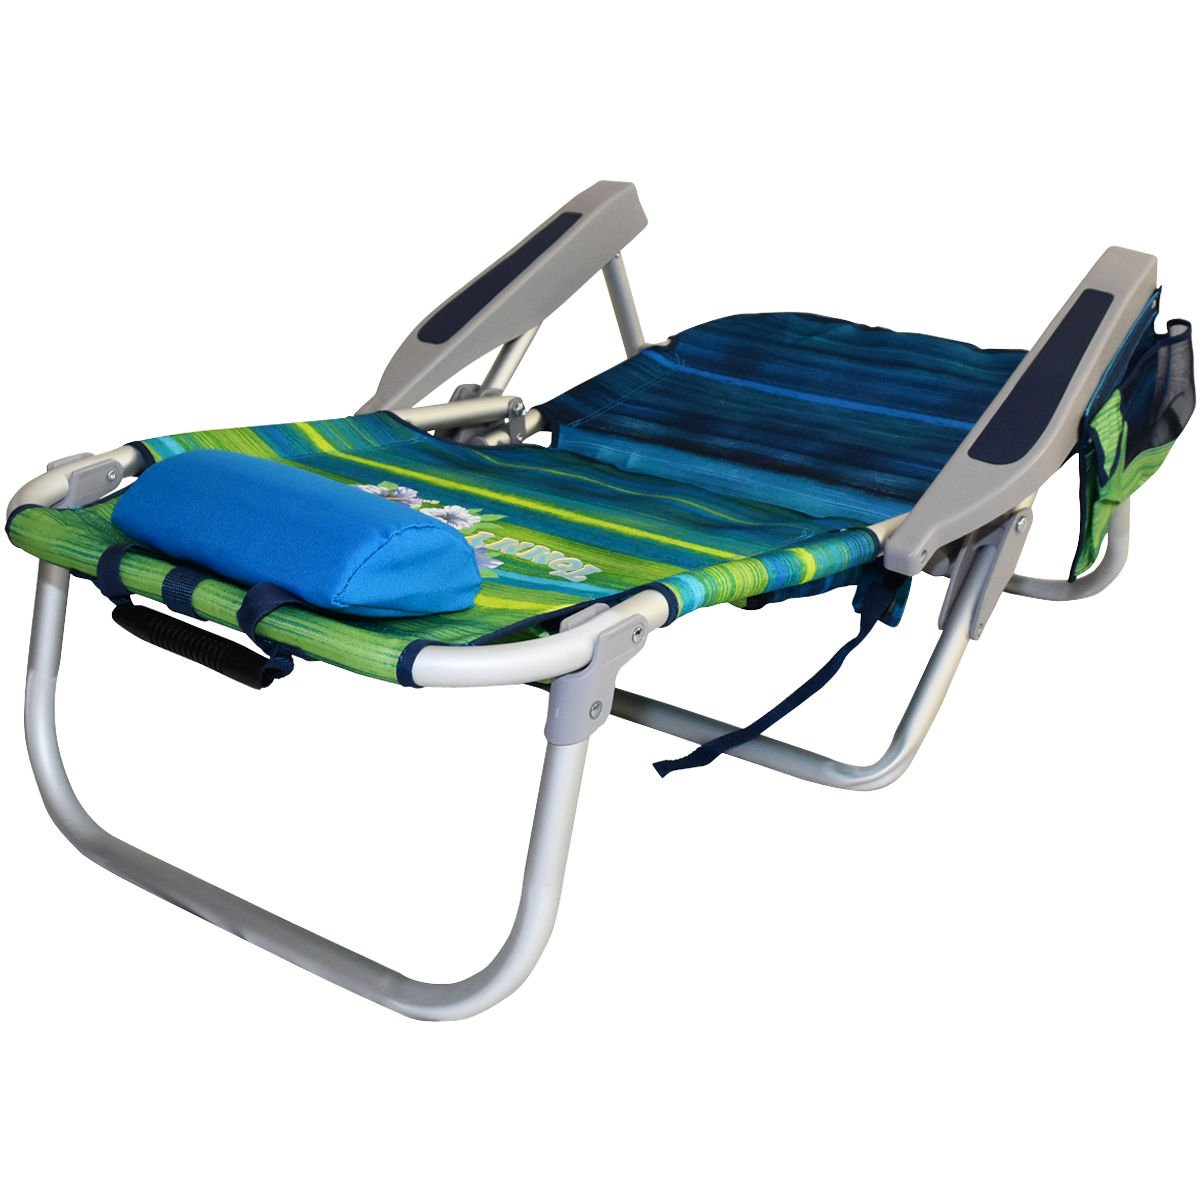 chairs with day chair portia is what double beach wooden backpack cooler